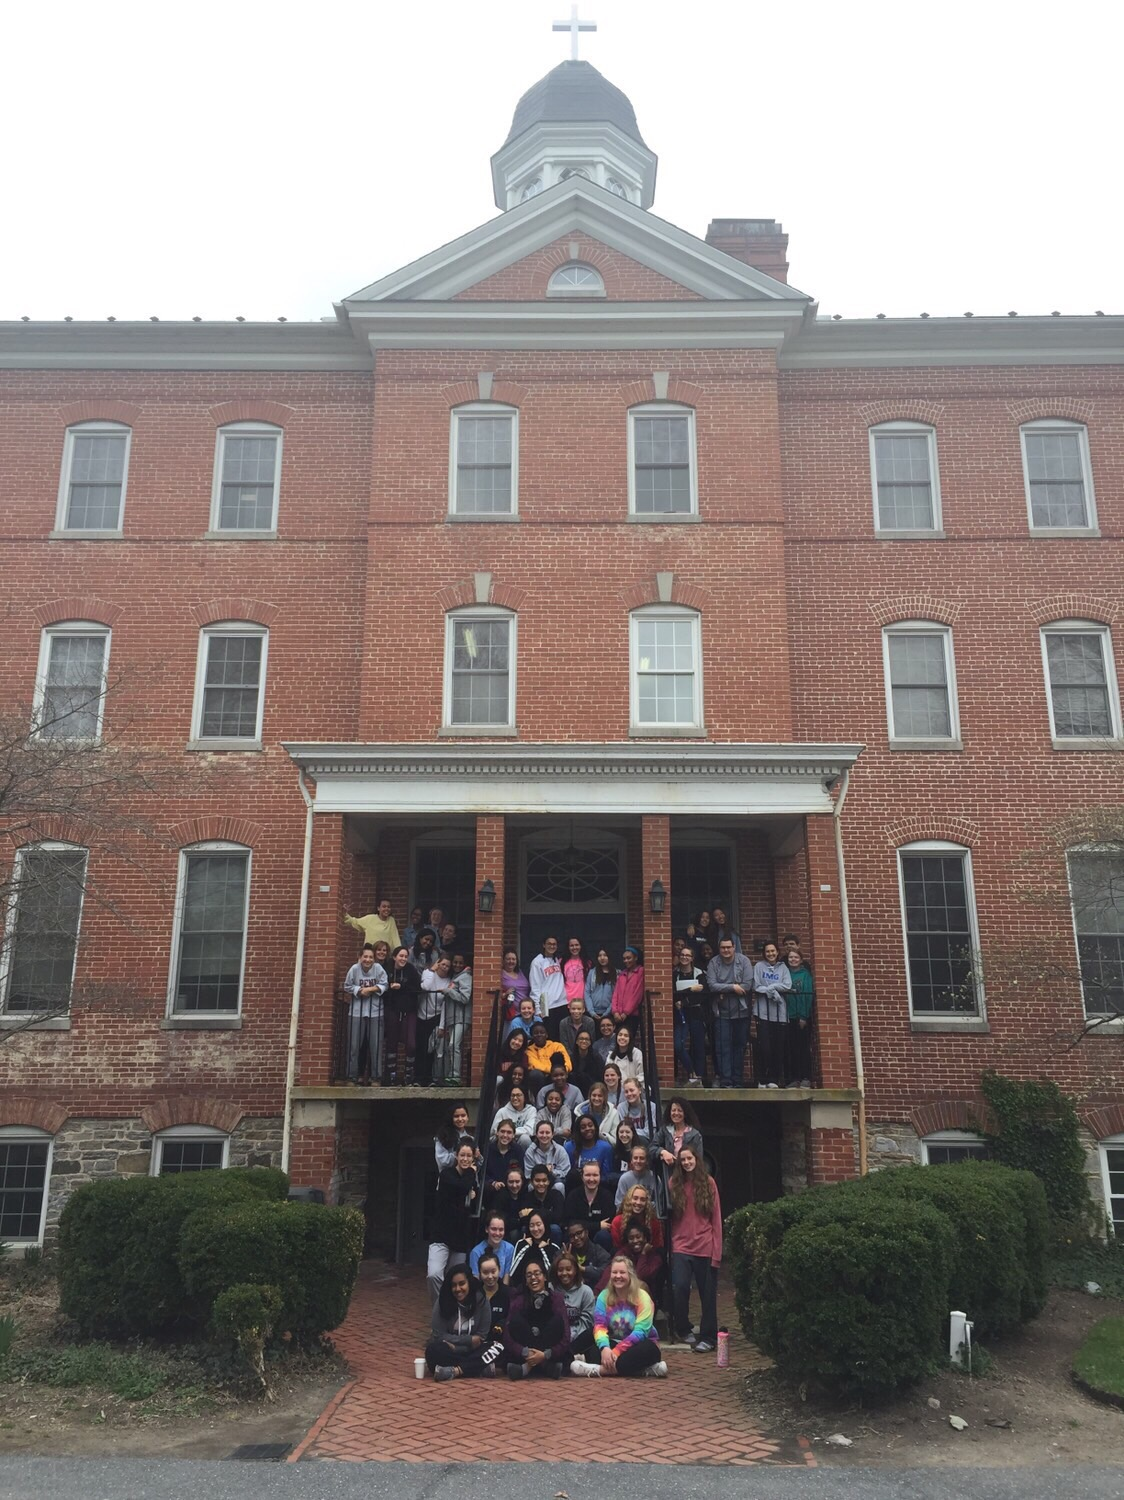 The Kairos 87 group takes one last group photo before departing to return to school.